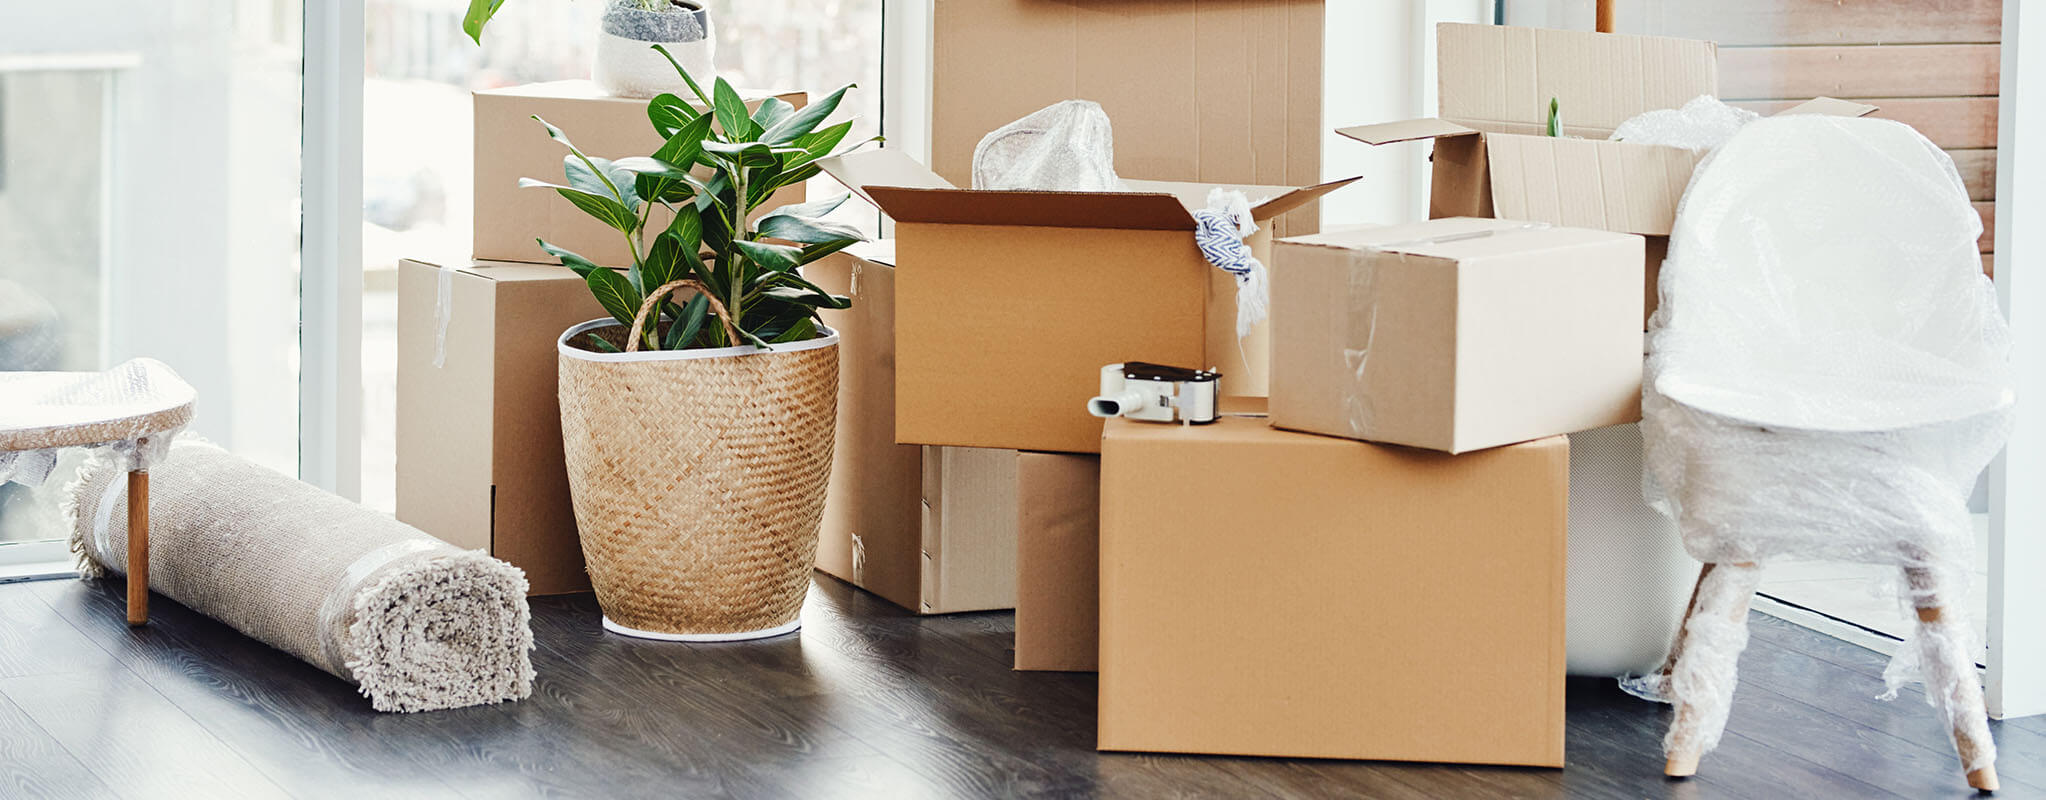 apartment with moving boxes